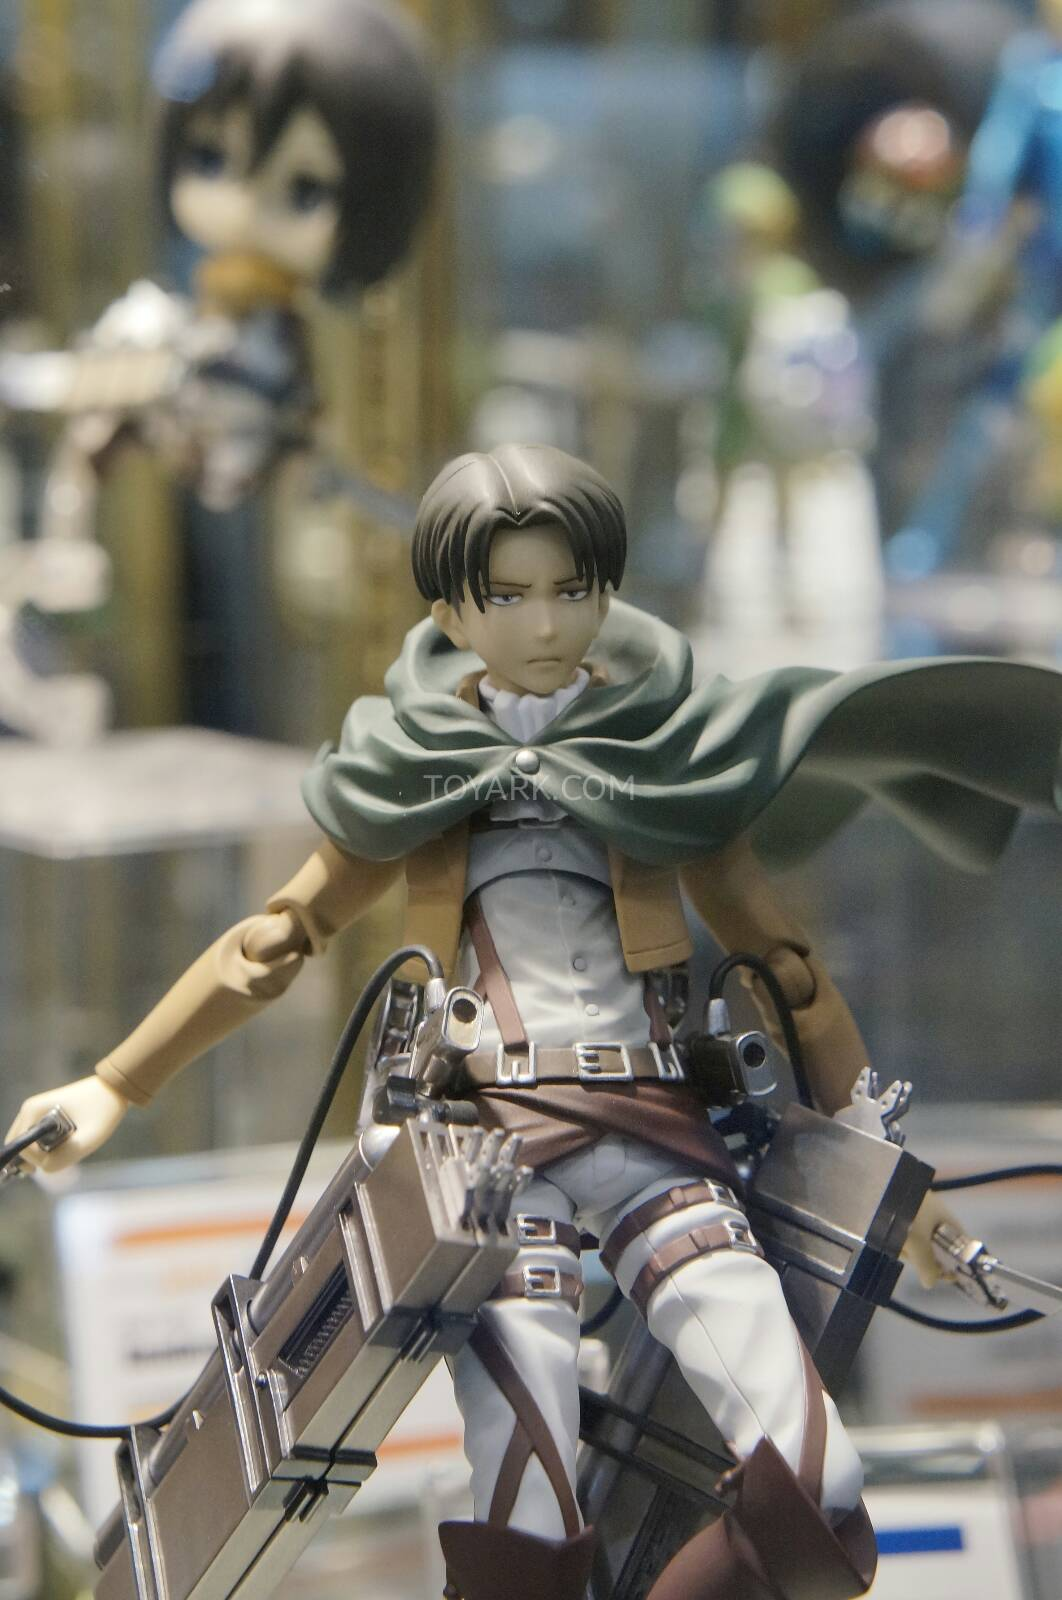 [EVENTO] Toy Fair 2014 - Good Smile Company / Max Factory / Phat Company / FREEing Toy-Fair-2014-Good-Smile-and-Max-Factory-Display-021